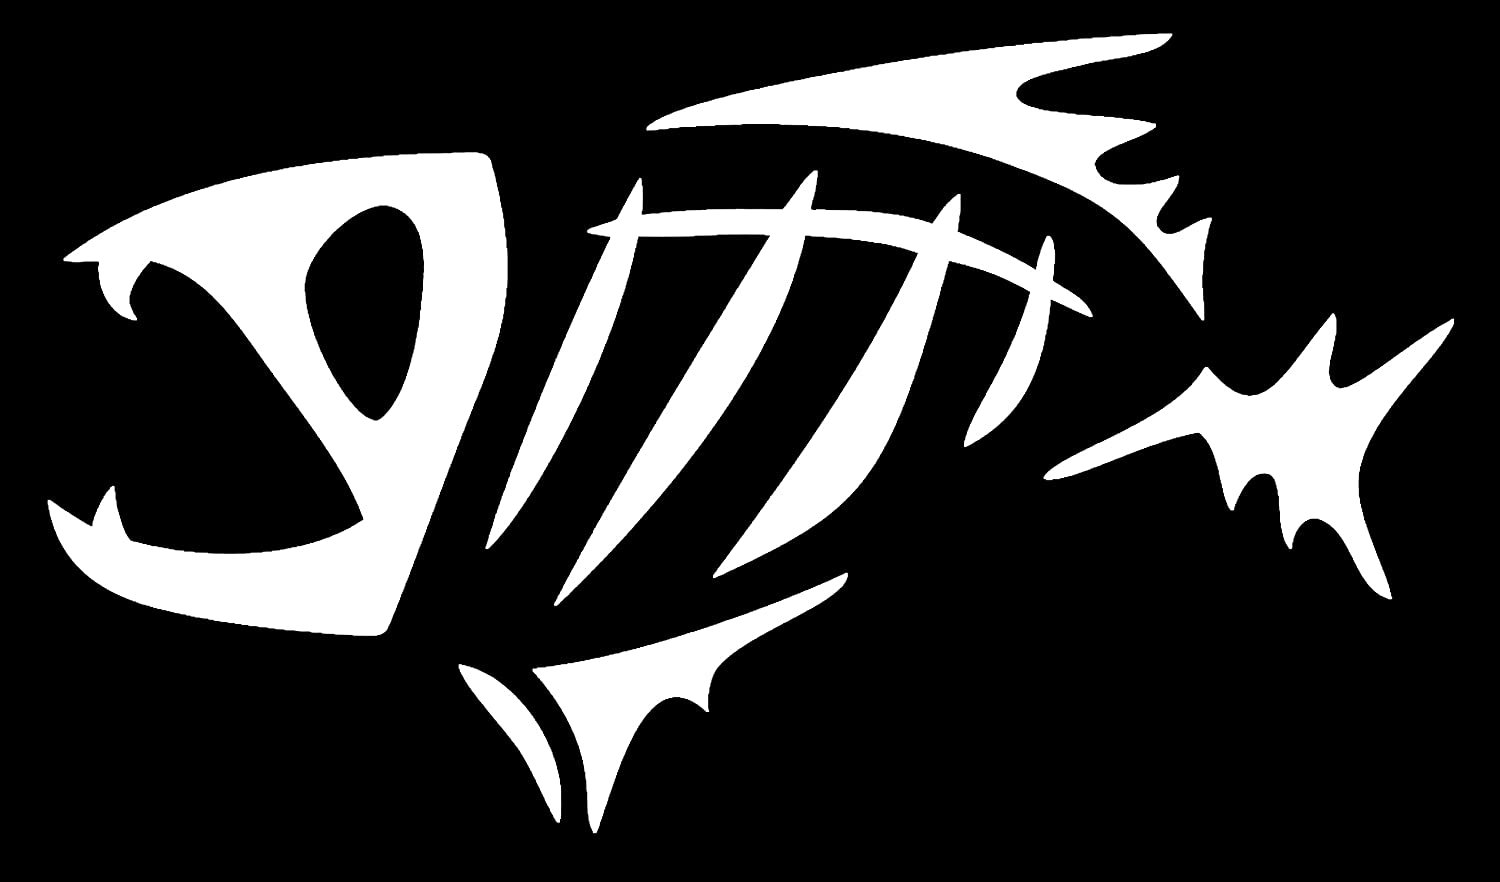 Bread8 Global's Die Cut G Loomis Fish Skeleton 10-inch High Quality Vinyl  Decal for cars, trucks, laptops, helmets, tool boxes, or any hard, smooth